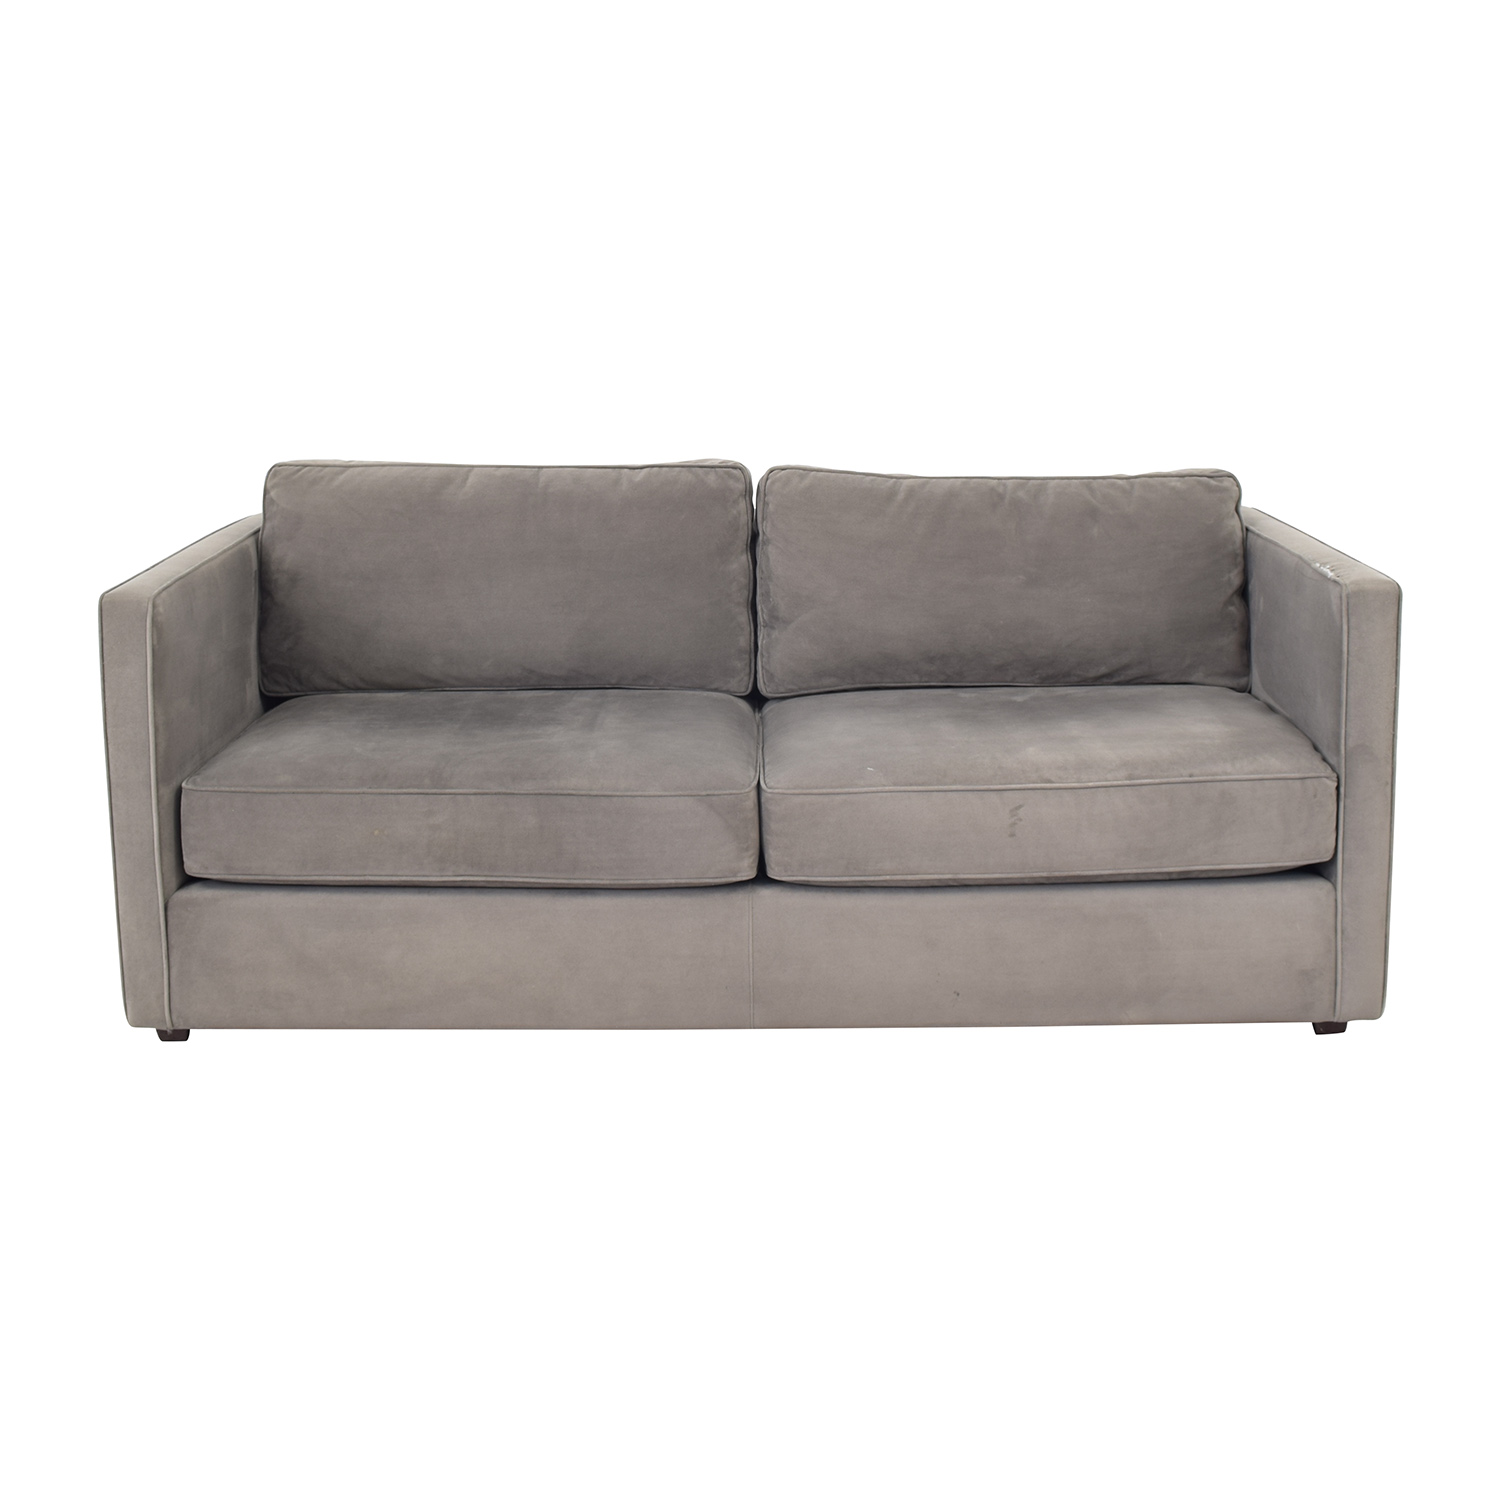 Room & Board Room & Board Watson Two Cushion Sofa ma